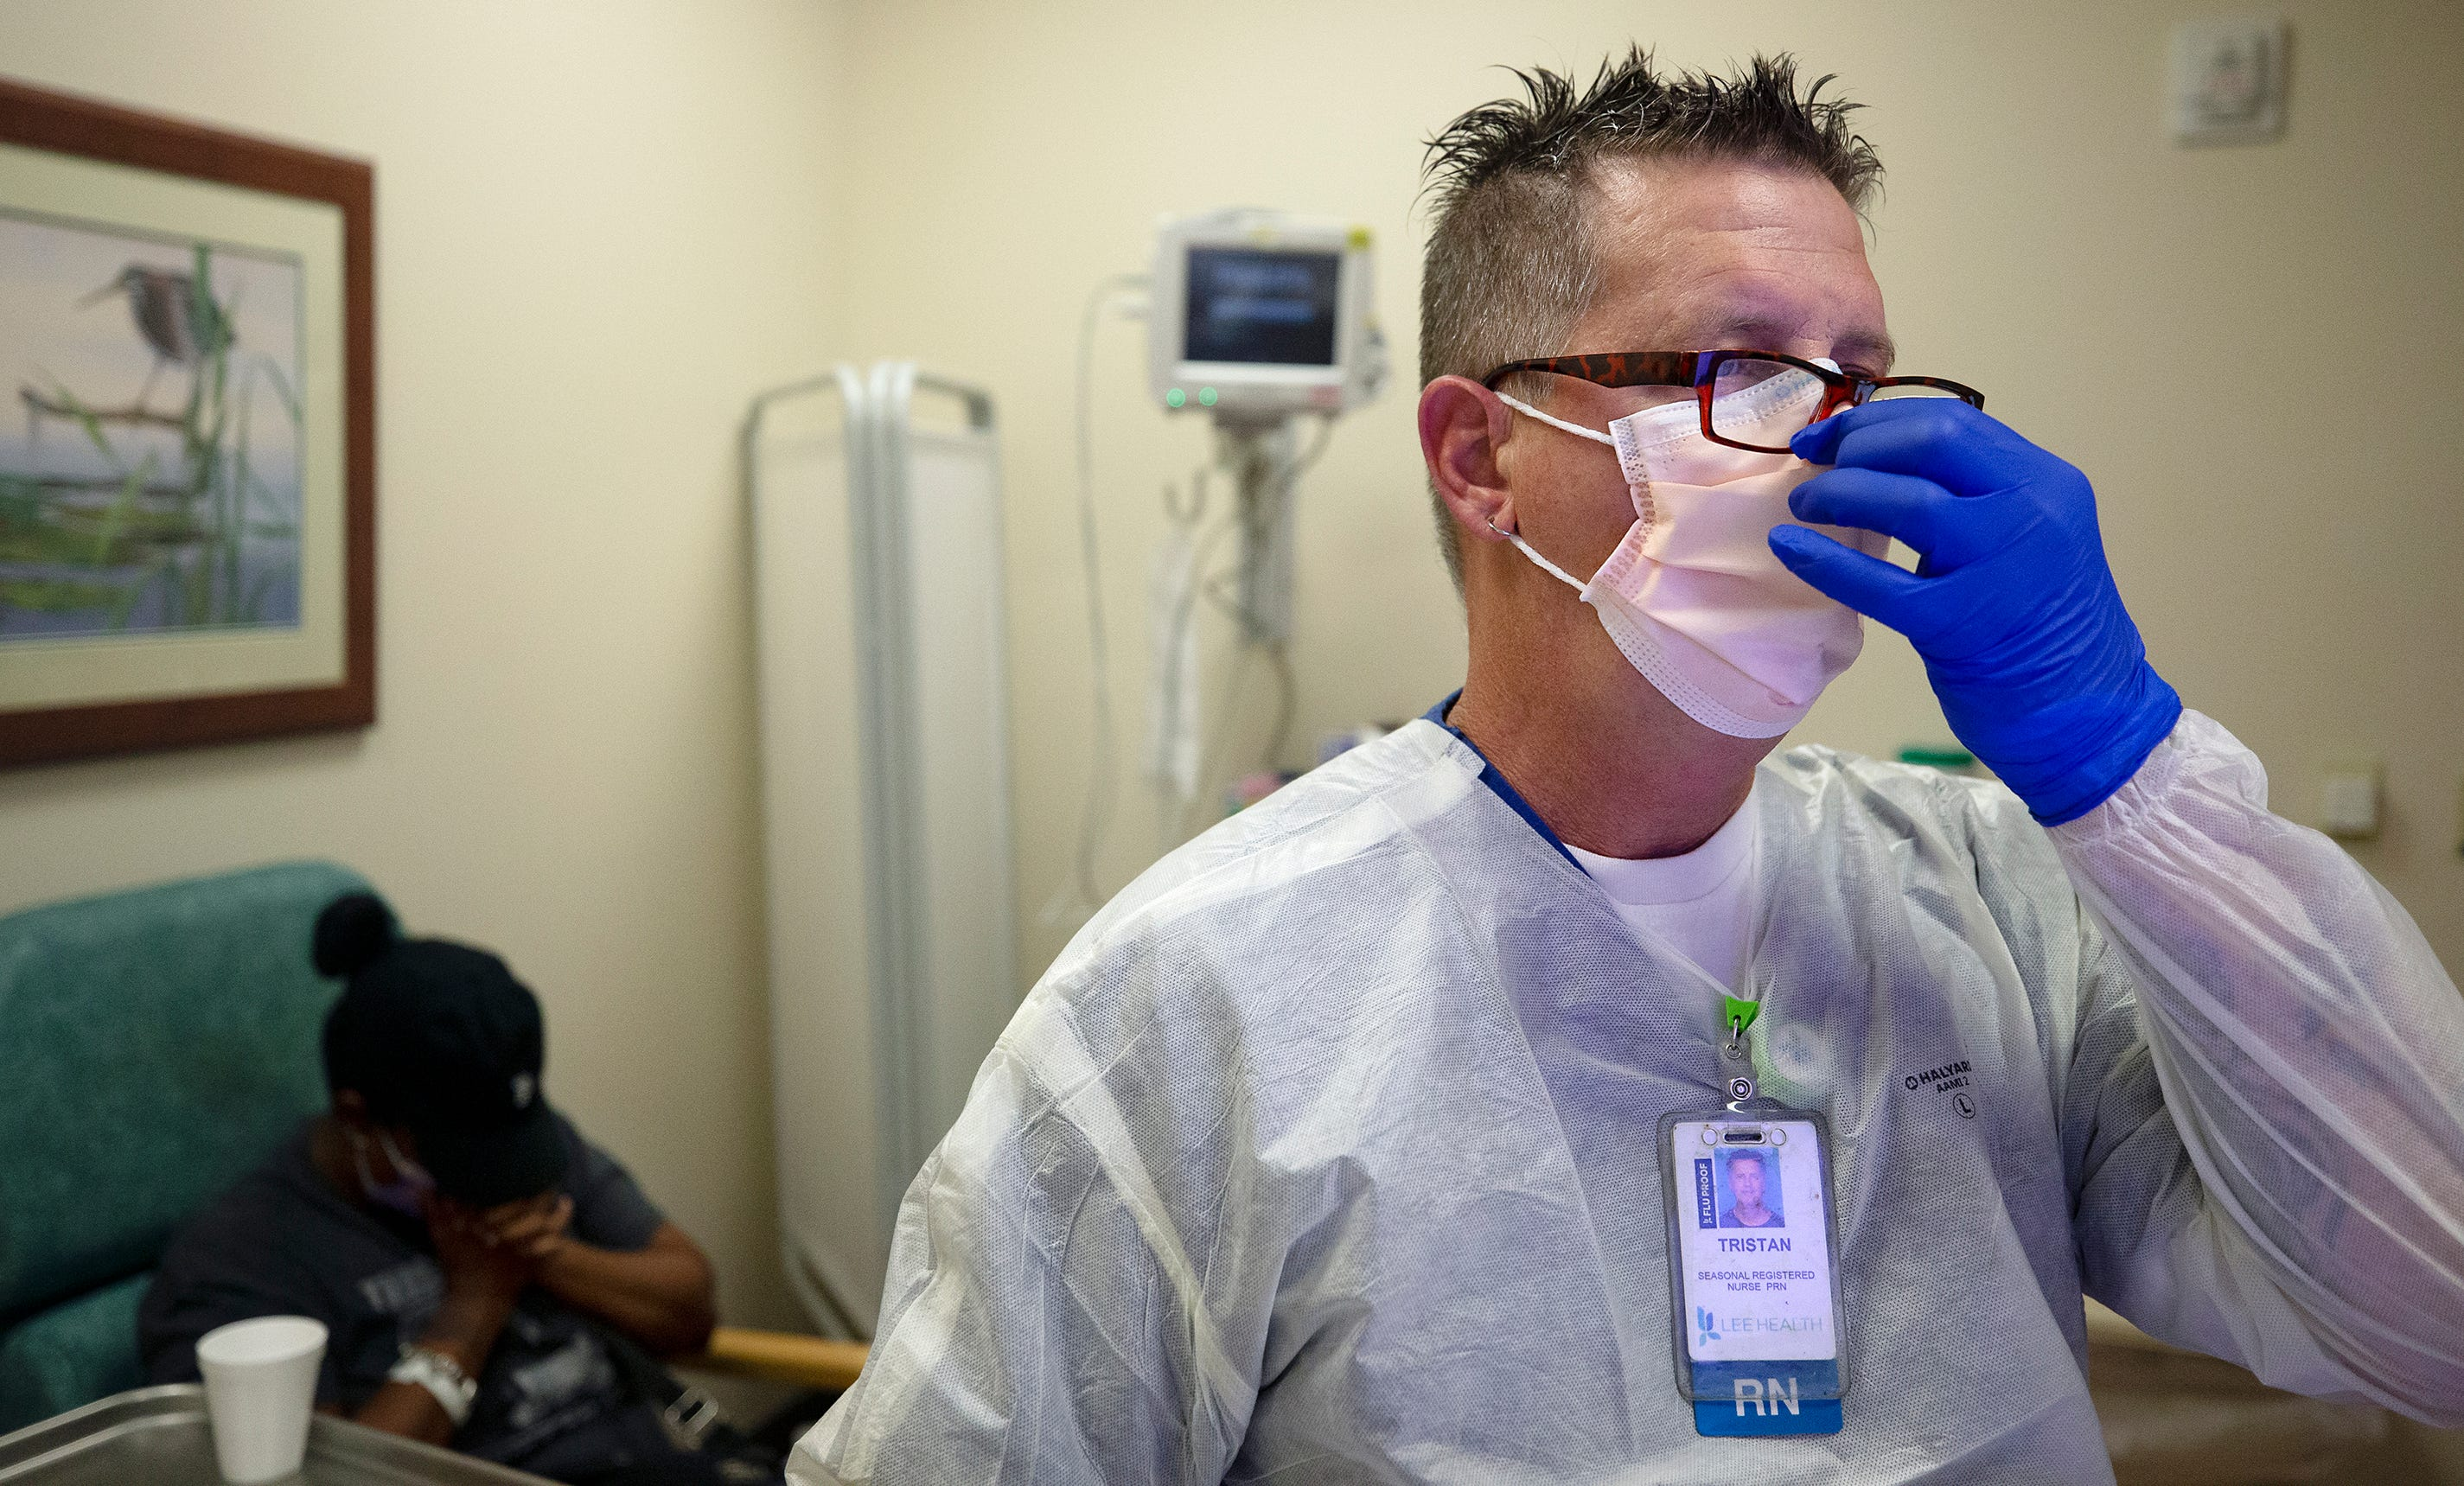 Emergency room nurse Tristan Manbevers checks in a woman complaining of COVID-19 symptoms at Gulf Coast Medical Center in Fort Myers, Fla.